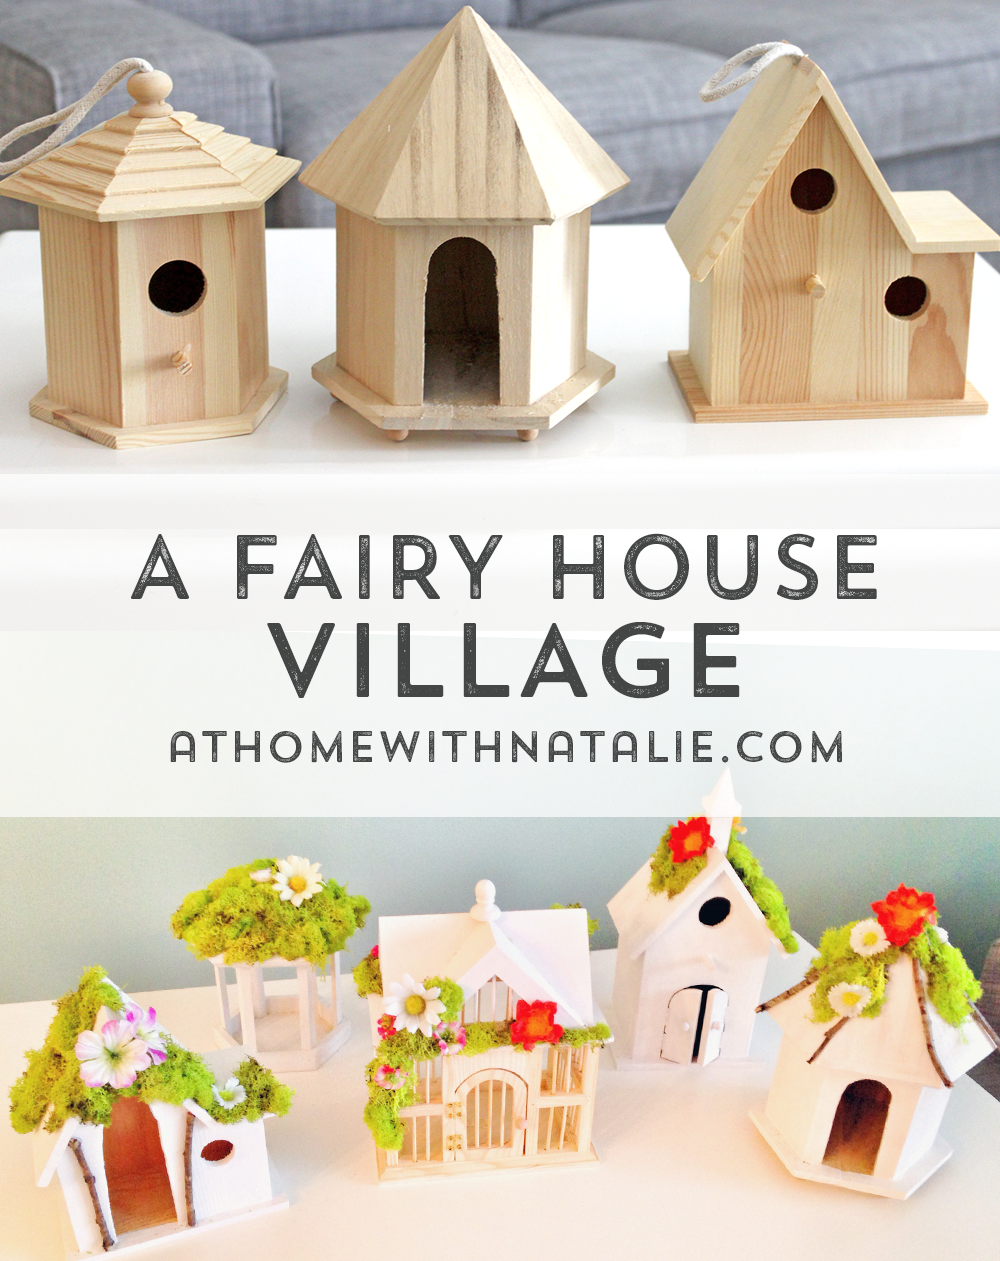 DIY Fairy House Village Tutorial At Home With Natalie